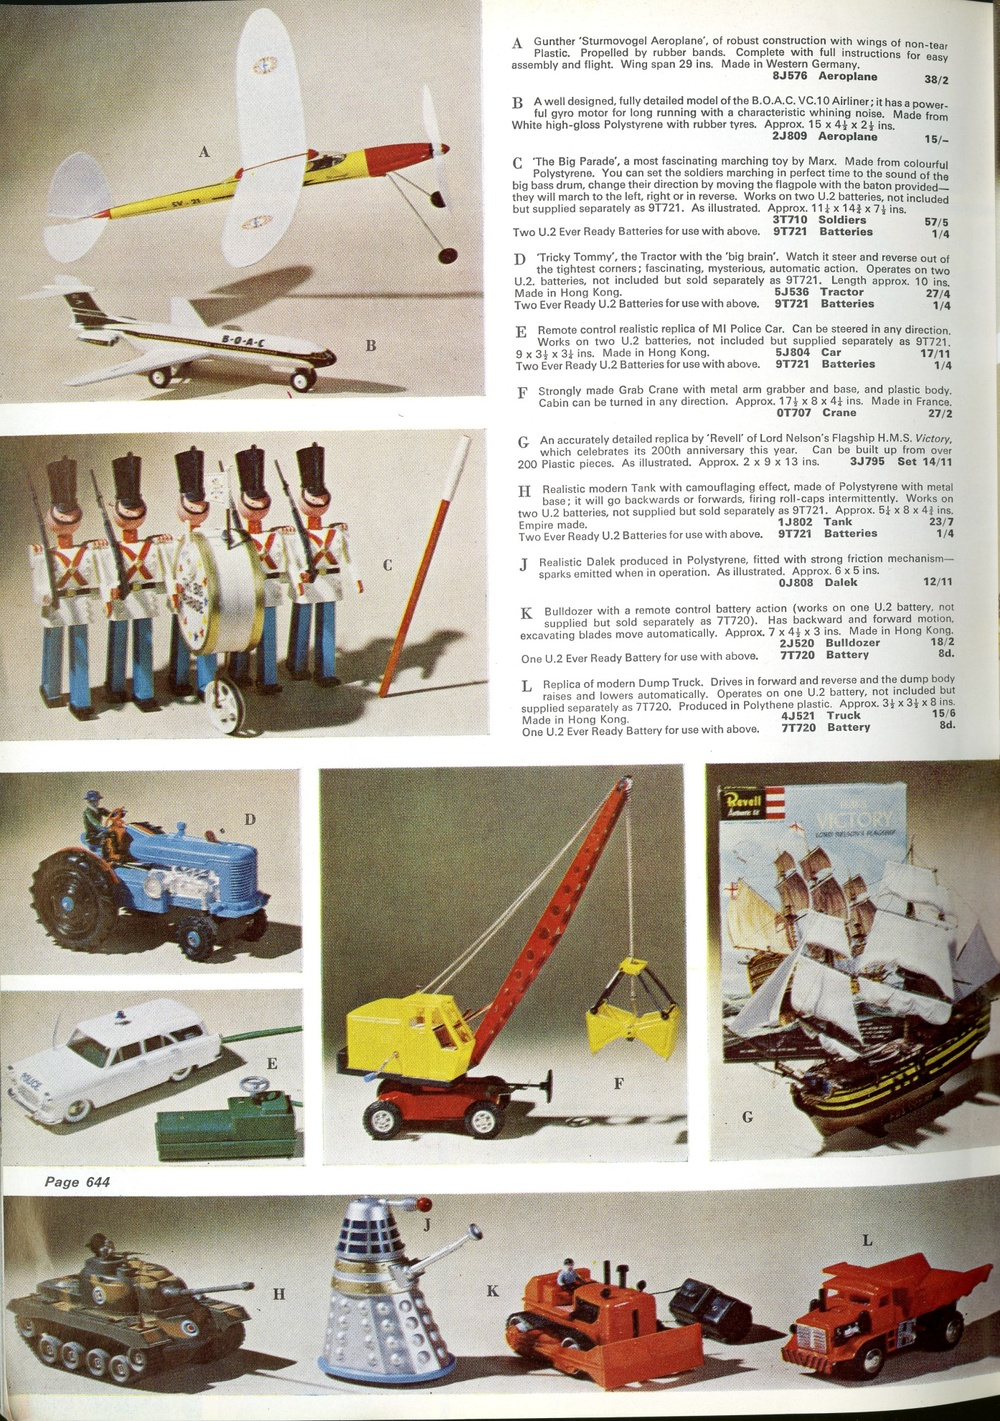 Grattans Winter 1965 catalogue showing a Louis Marx and Company Ltd. friction-drive Dalek